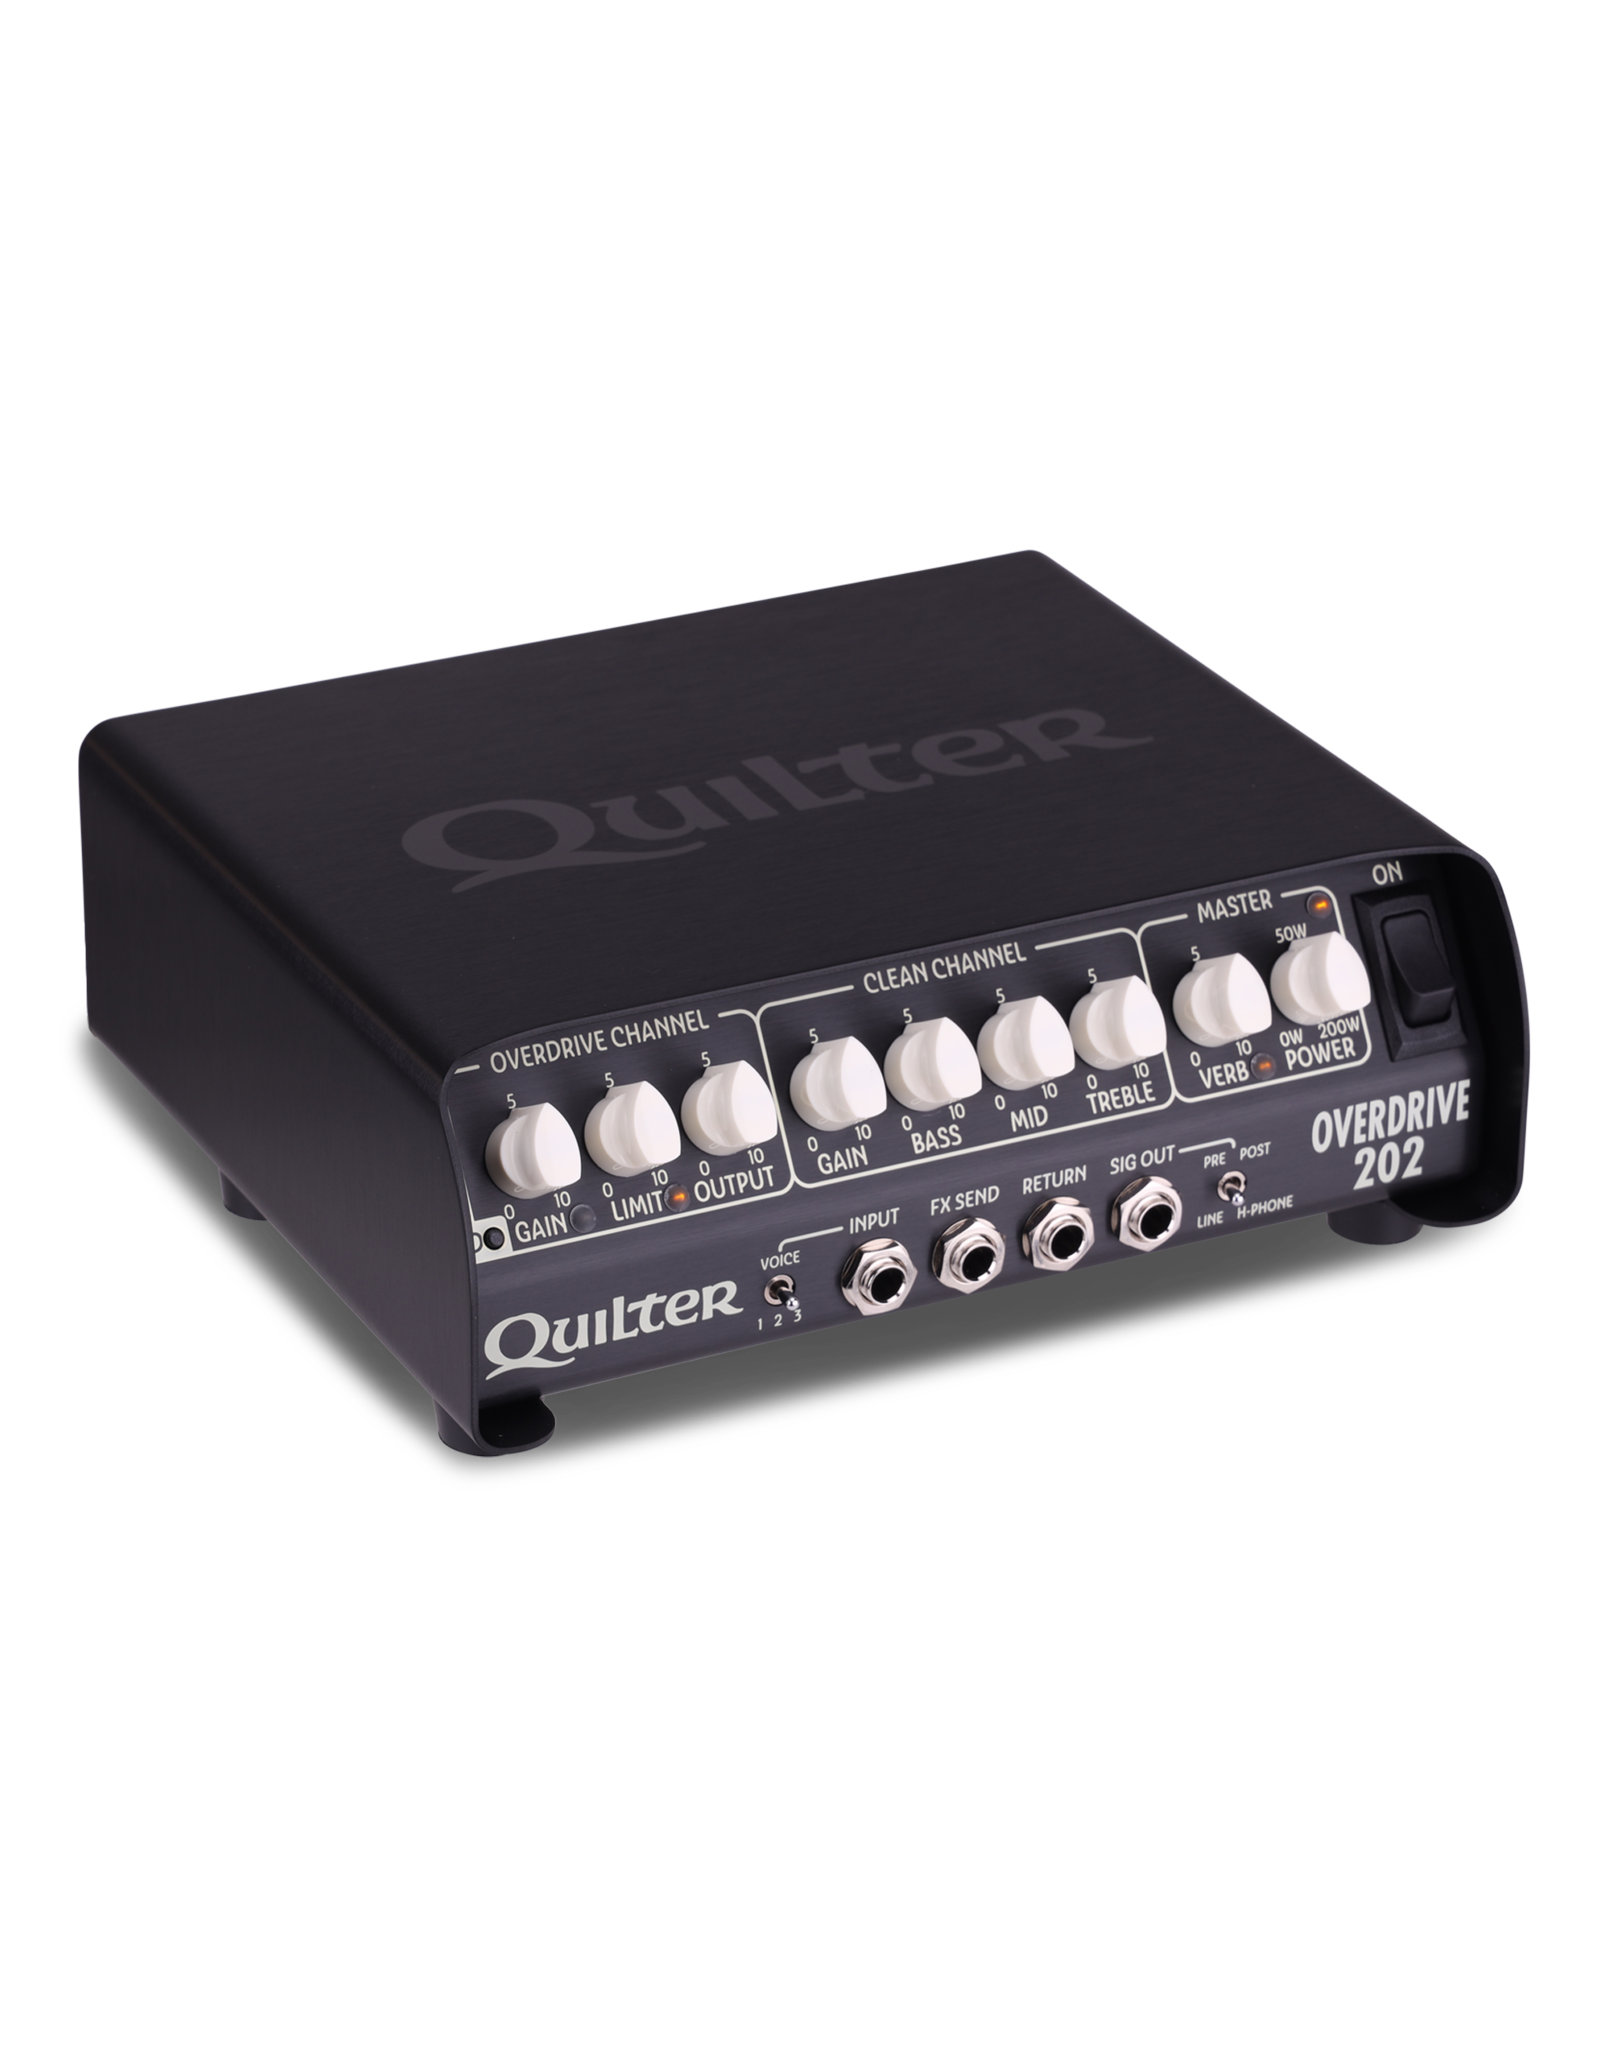 Quilter Quilter OverDrive 202